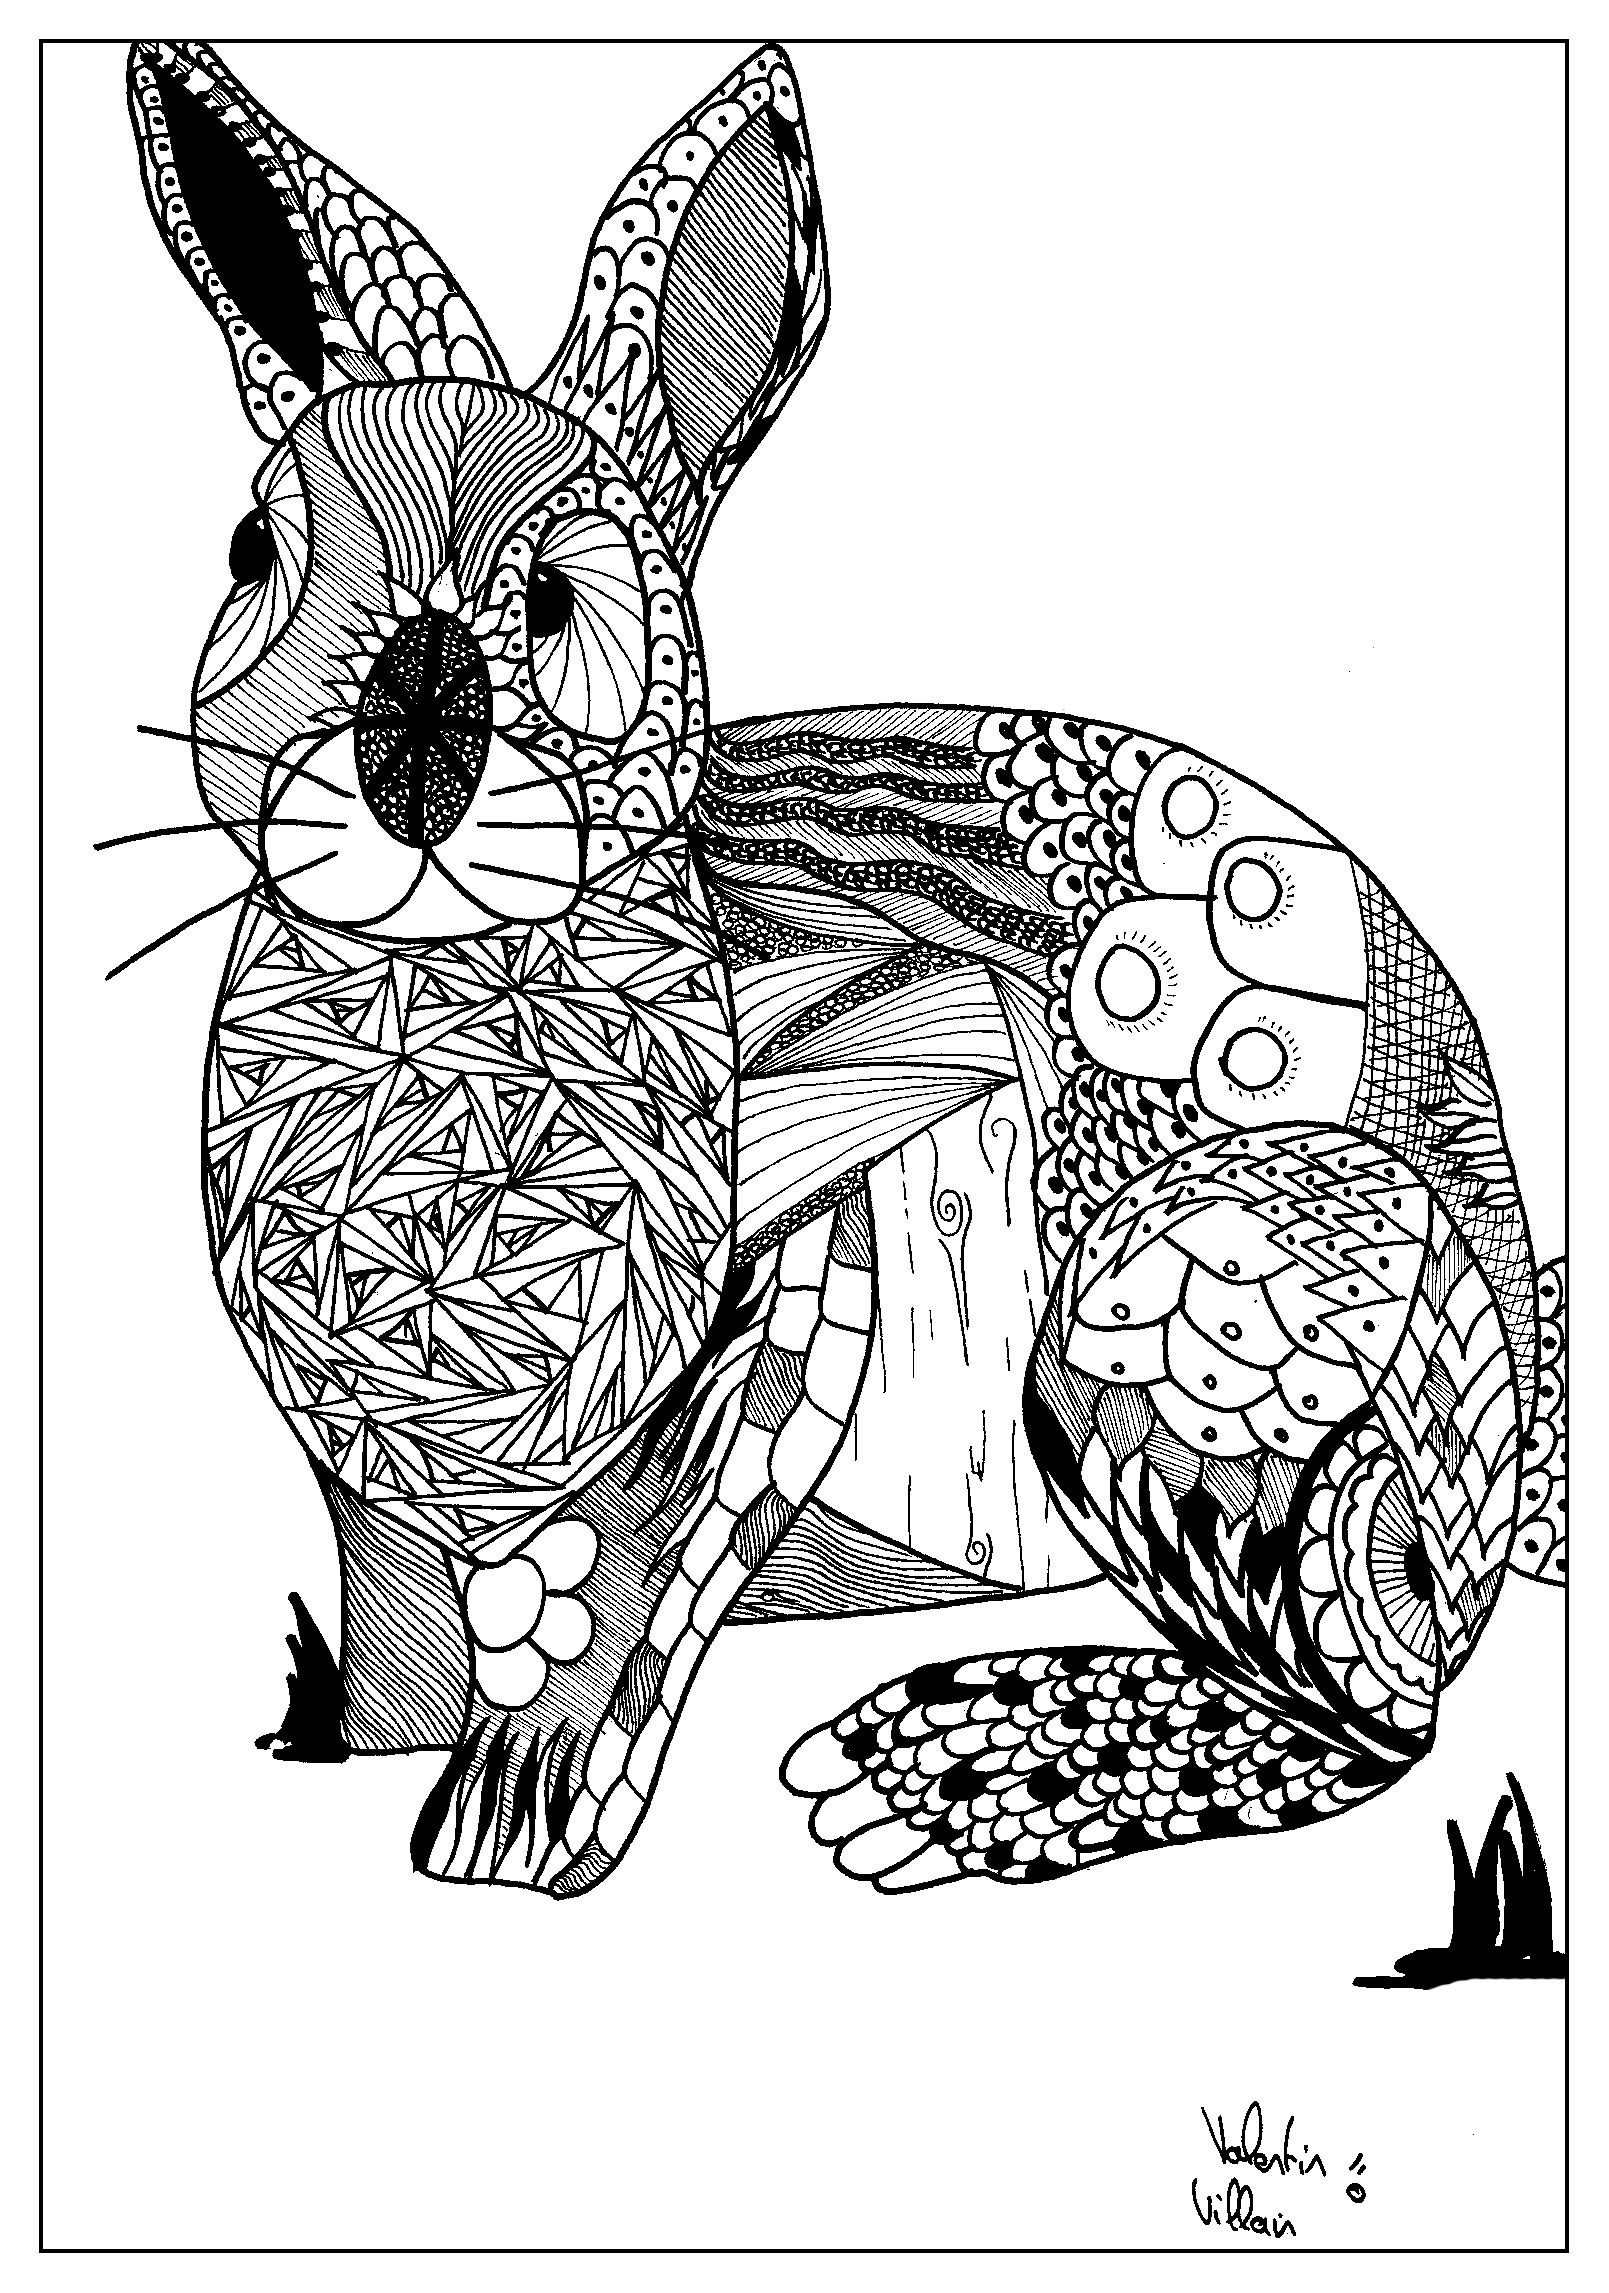 For the Easter a rabbit with a zentangle style